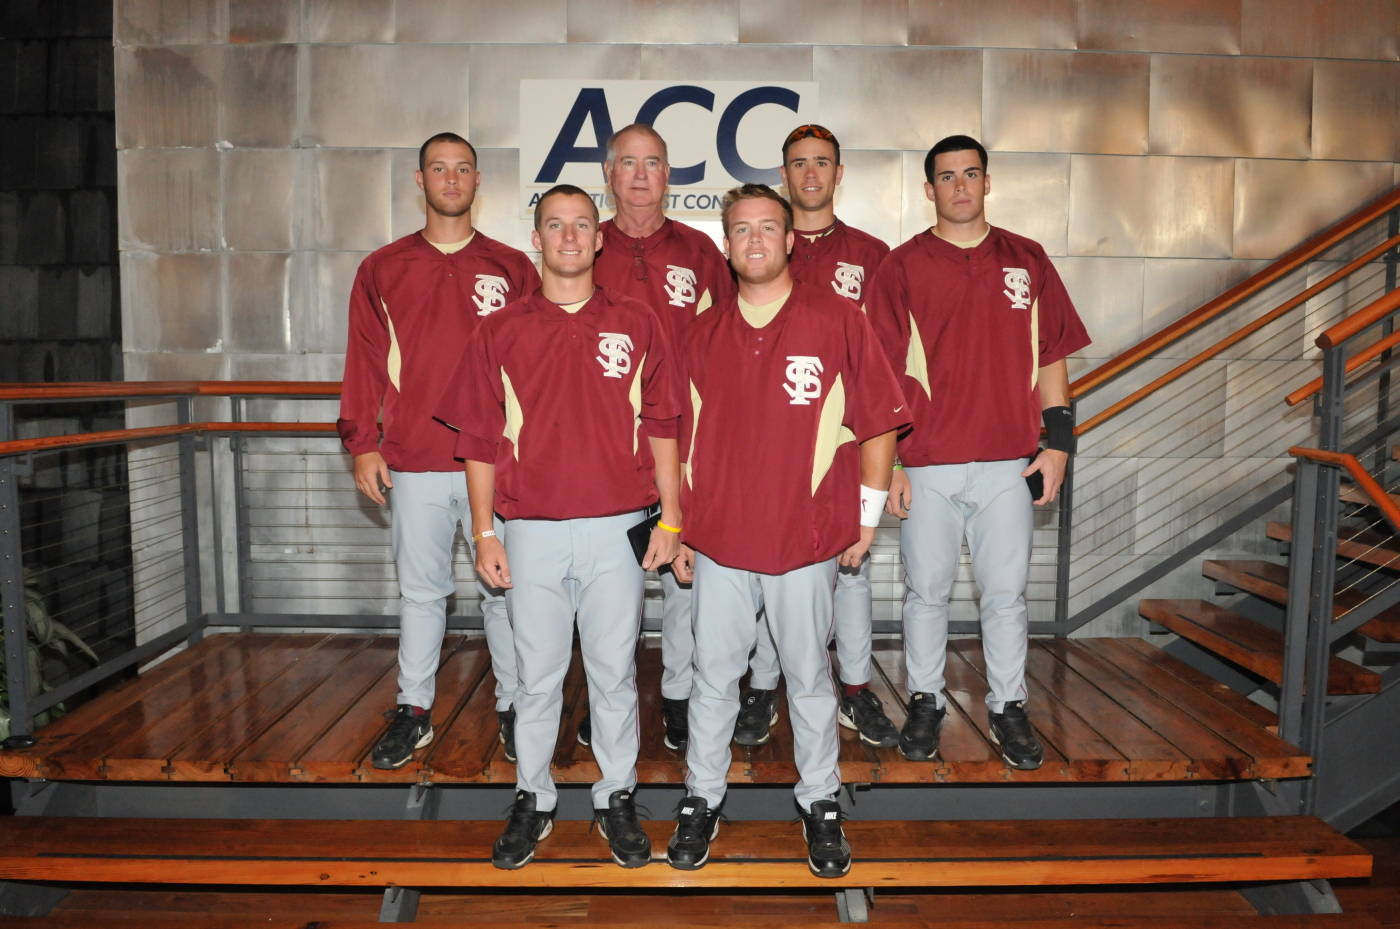 Florida State's All-ACC honorees (front row L to R: Tyler Holt and Jason Stidham; back row L to R: Mike McGee, head coach Mike Martin, Sean Gilmartin and Stephen Cardullo)